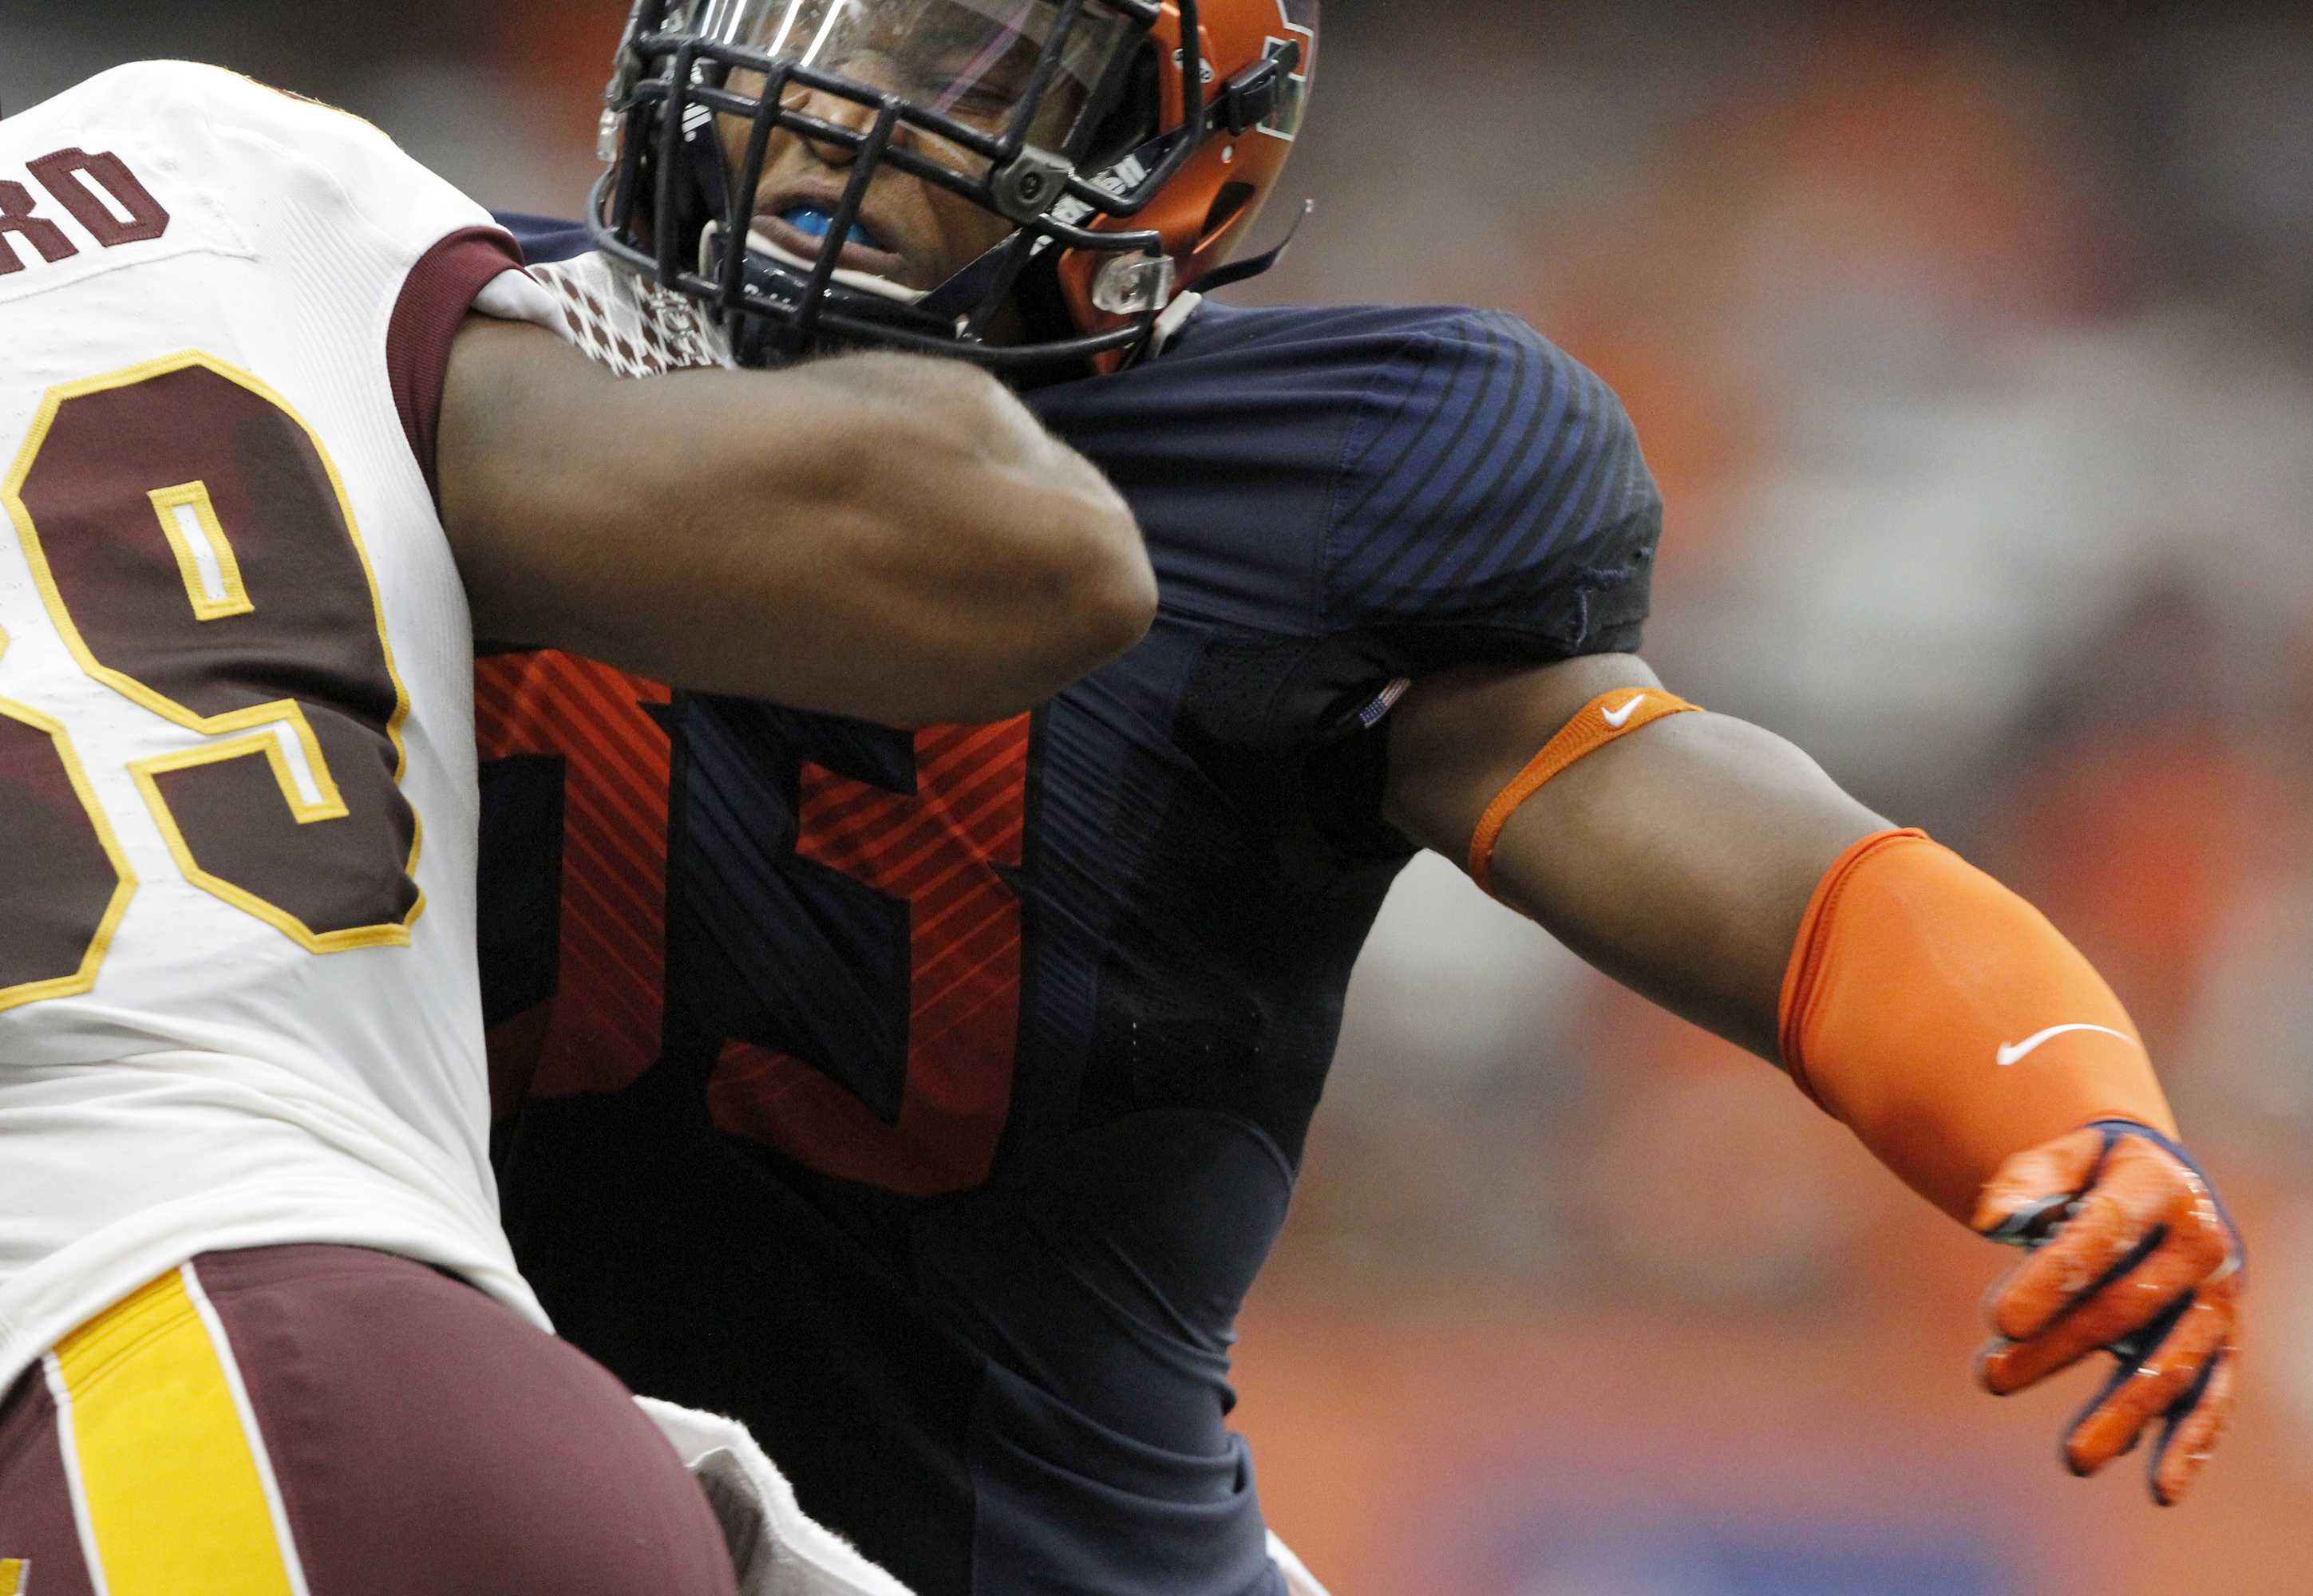 Syracuse's Qaadir Sheppard (right) tries to get past Central Michigan's Ben McCord (left) in the first quarter of an NCAA college football game in Syracuse, N.Y., Saturday, Sept. 19, 2015. (AP Photo/Nick Lisi)